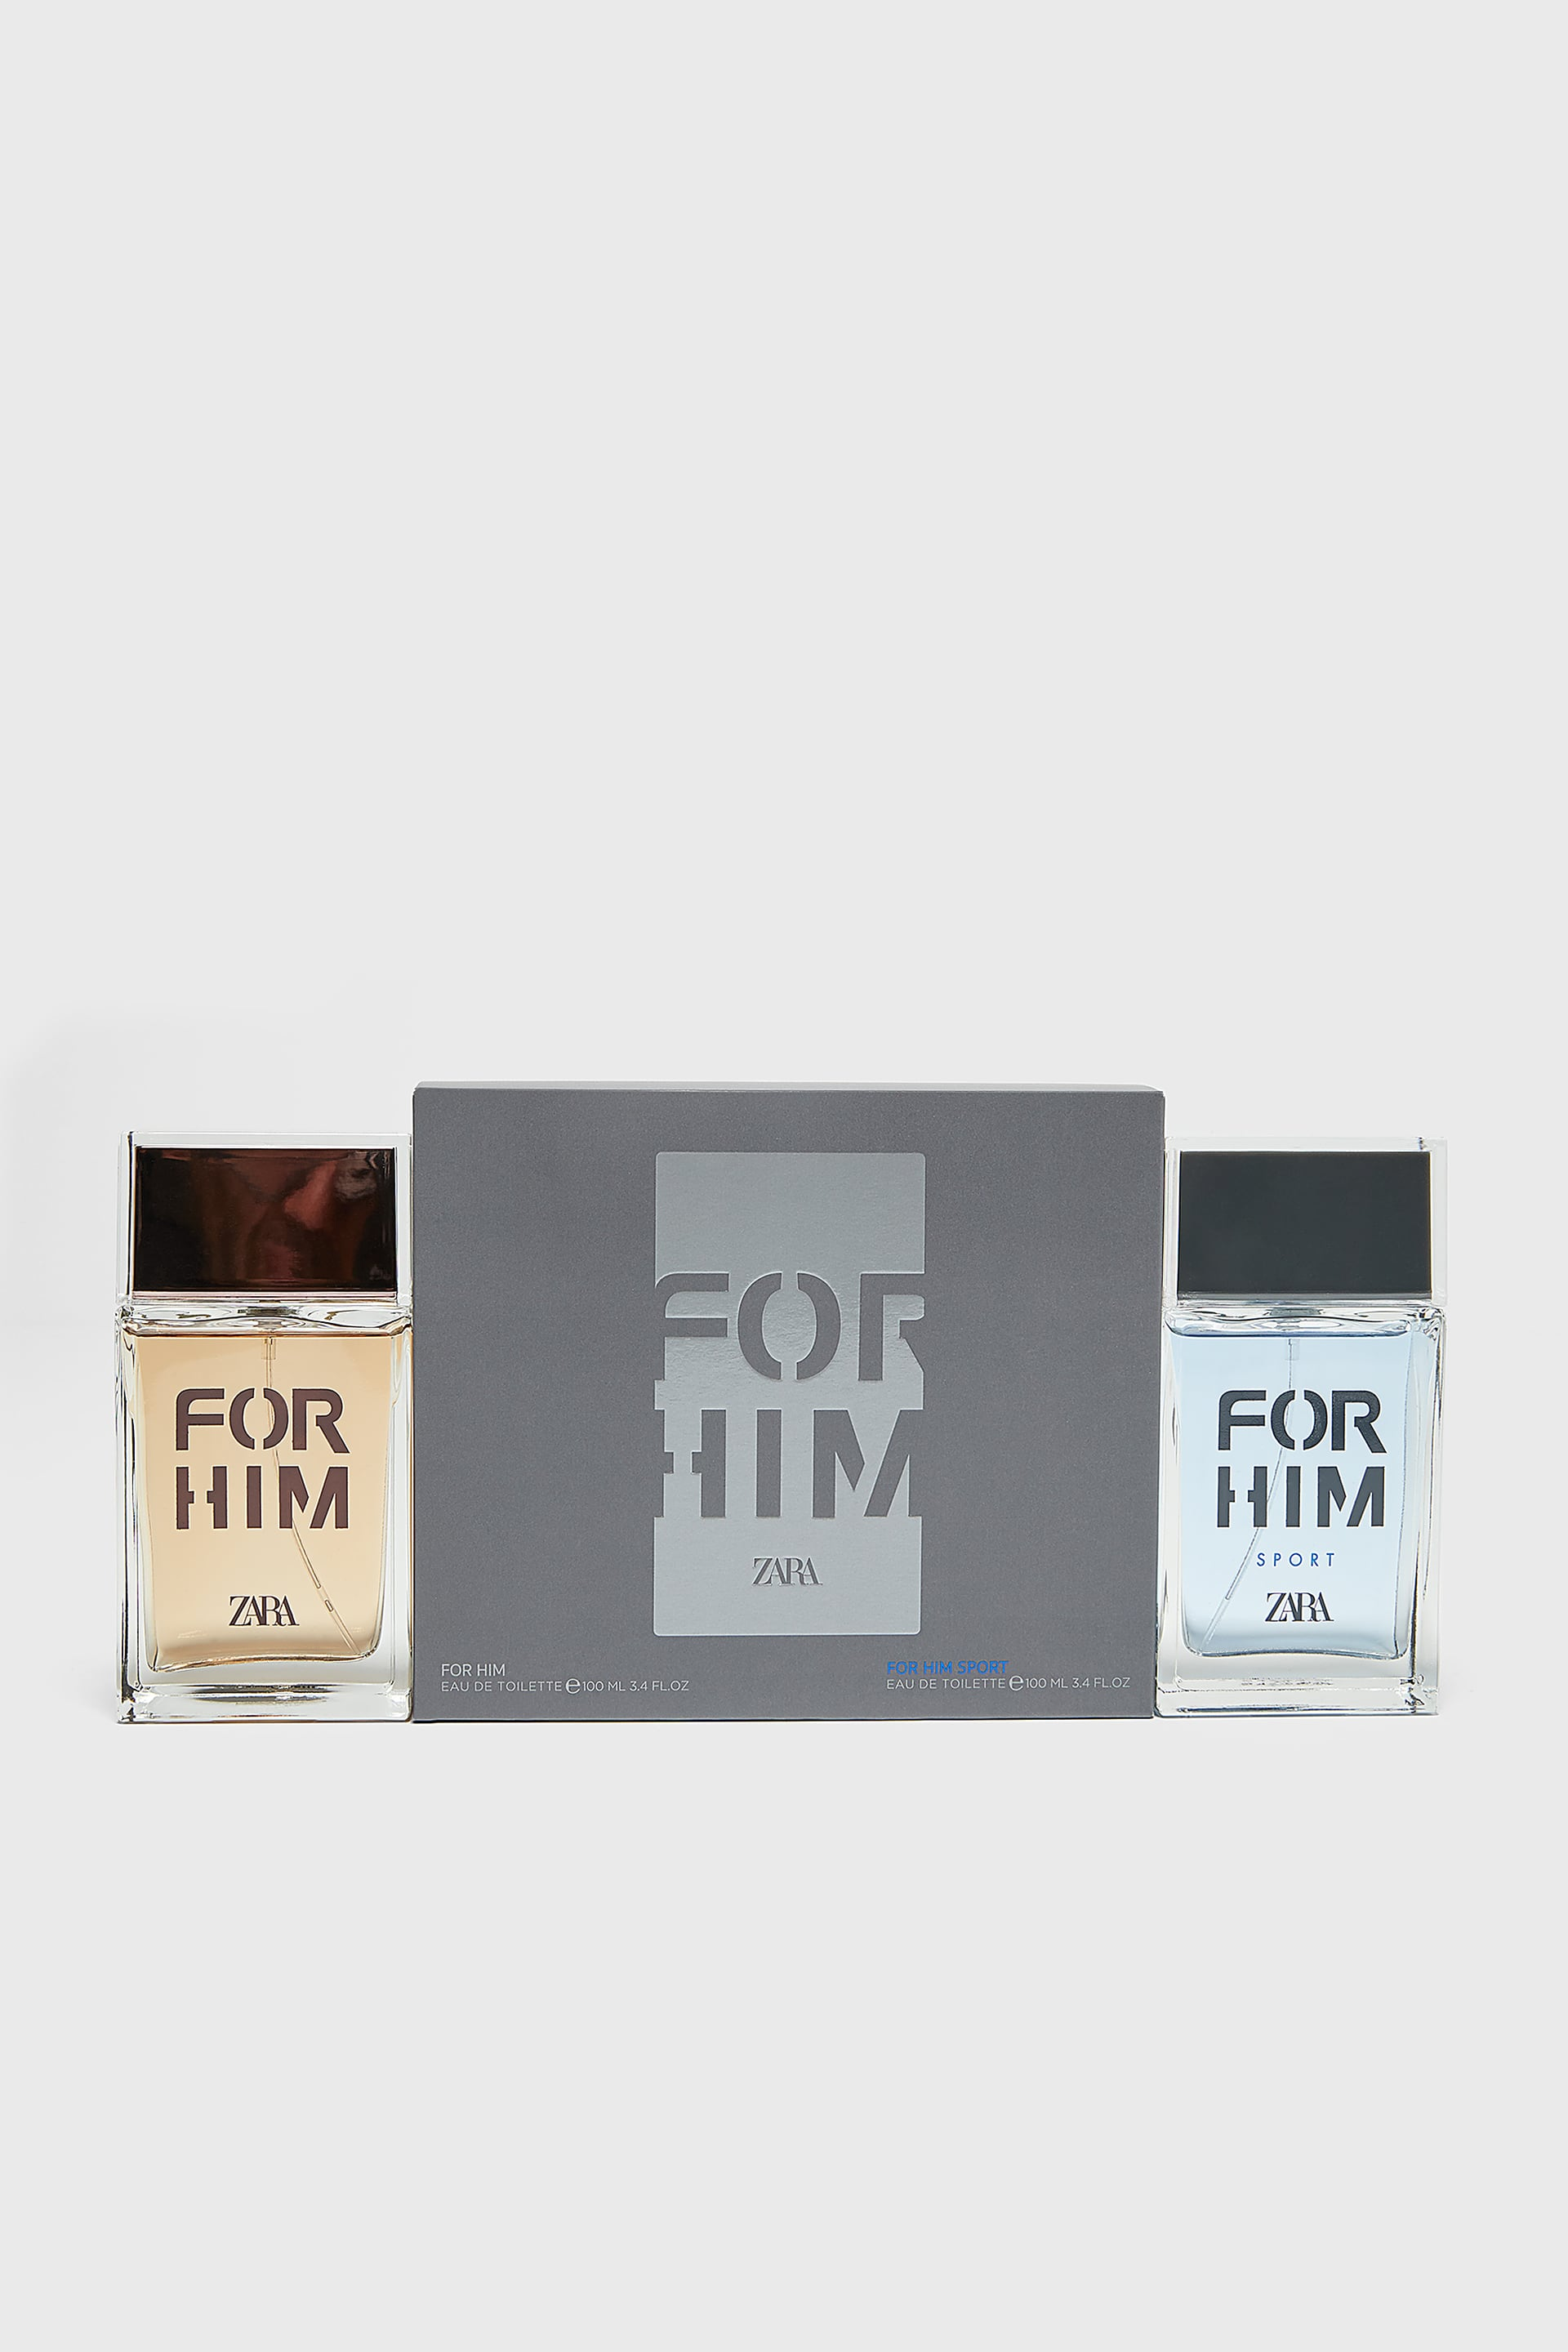 FOR HIM + FOR HIM SPORT 100ML / 3.38 OZ